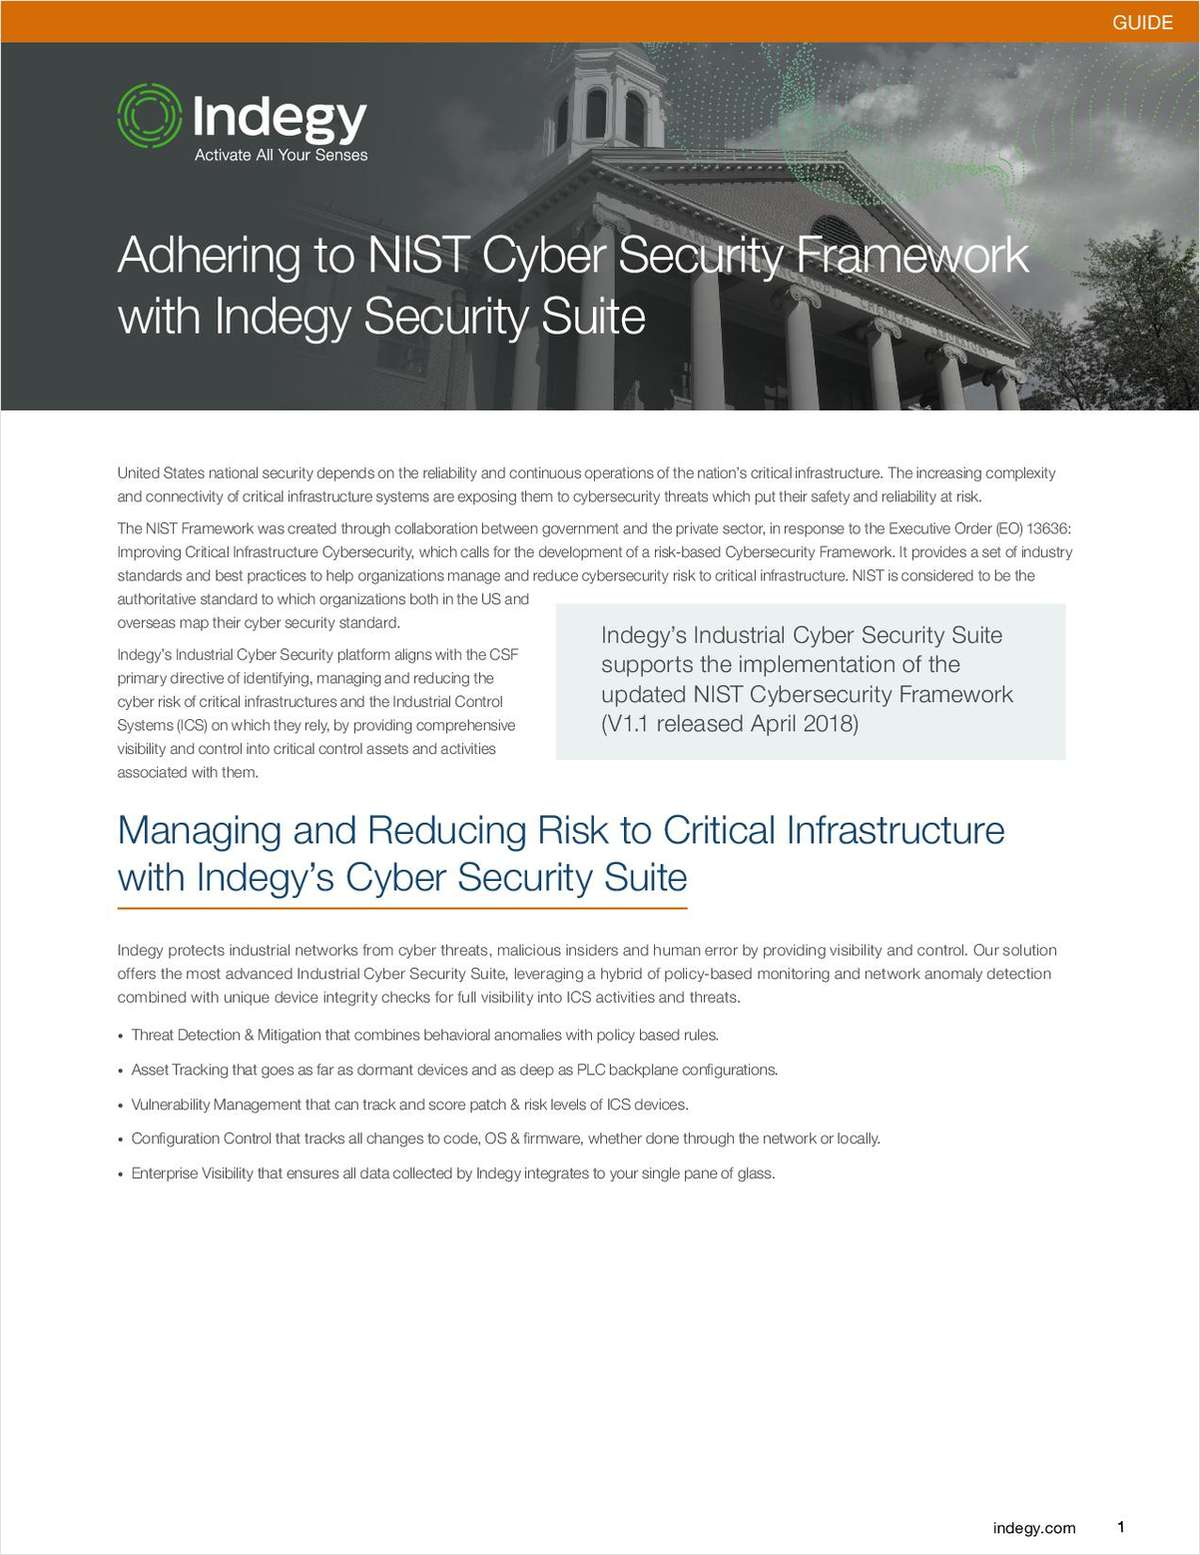 Adhering to the NIST Cybersecurity Framework